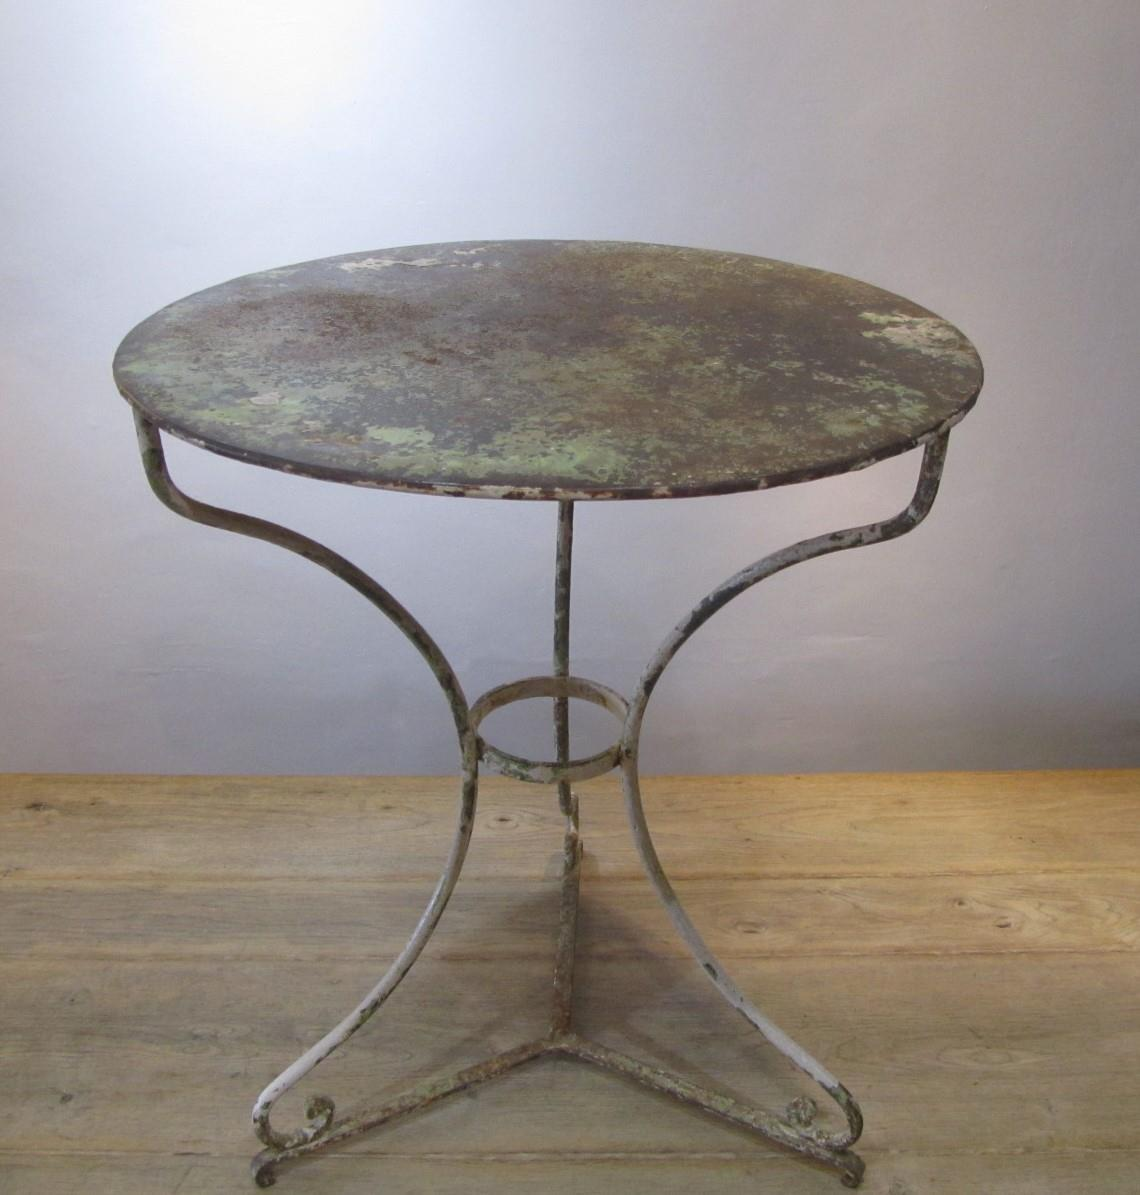 Antique french wrought iron cafe table interior for Wrought iron cafe chairs